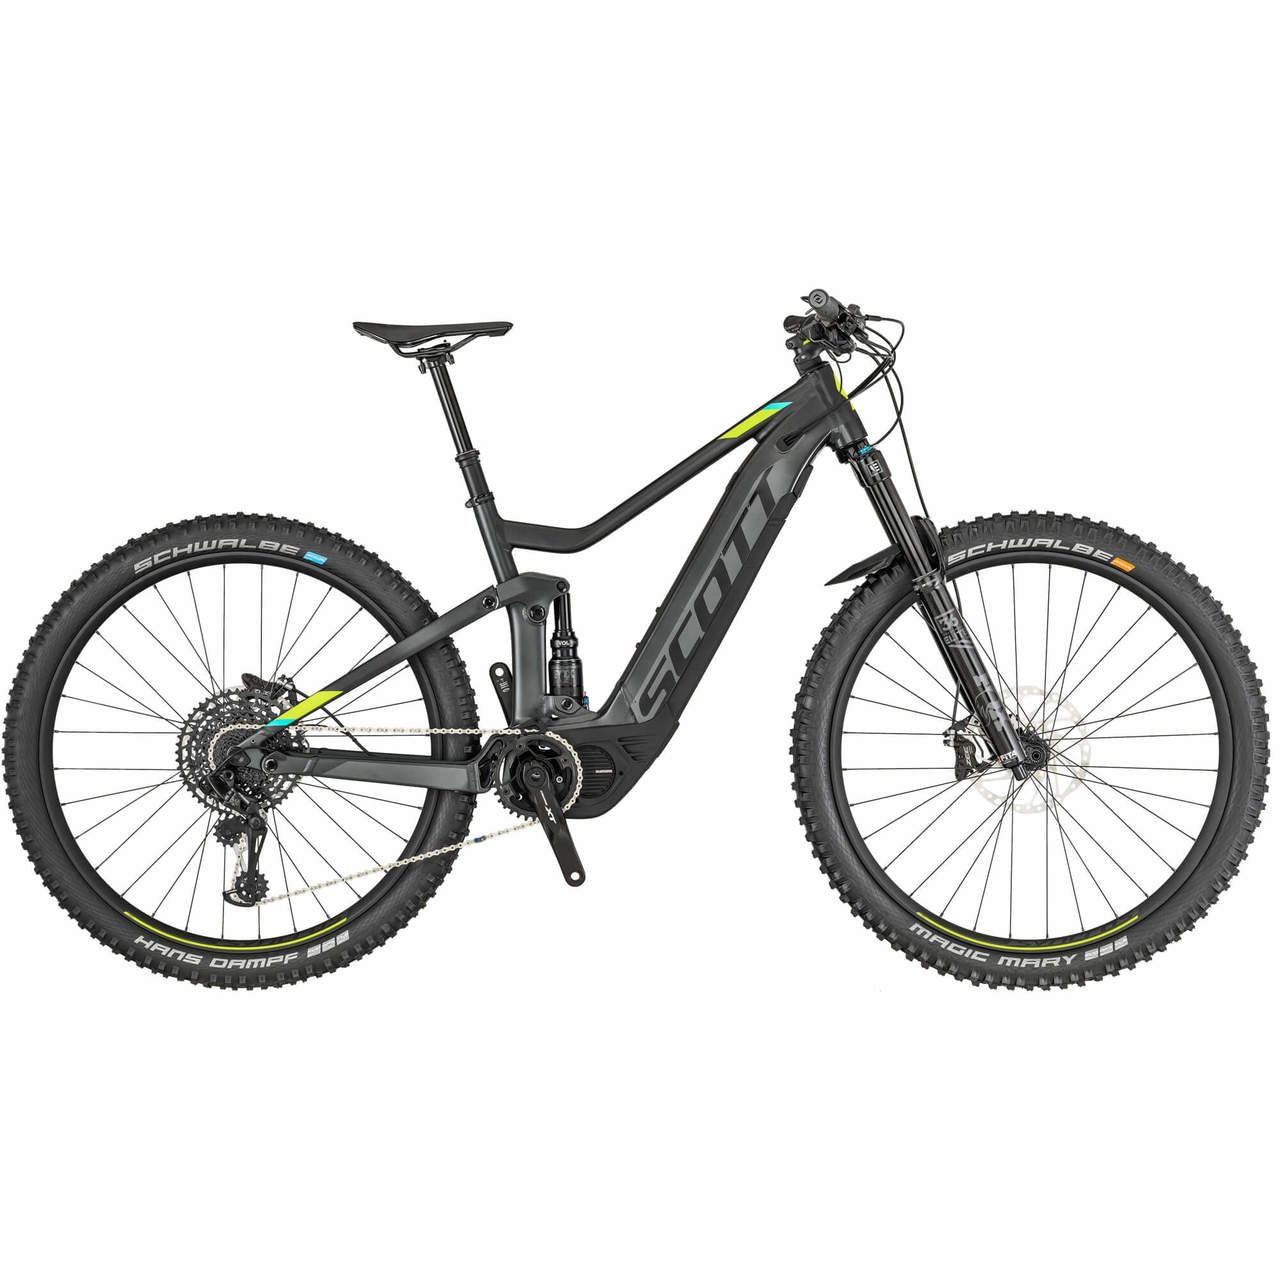 Scott Electric Genius Eride 910 2020 Electric Mountain Bike